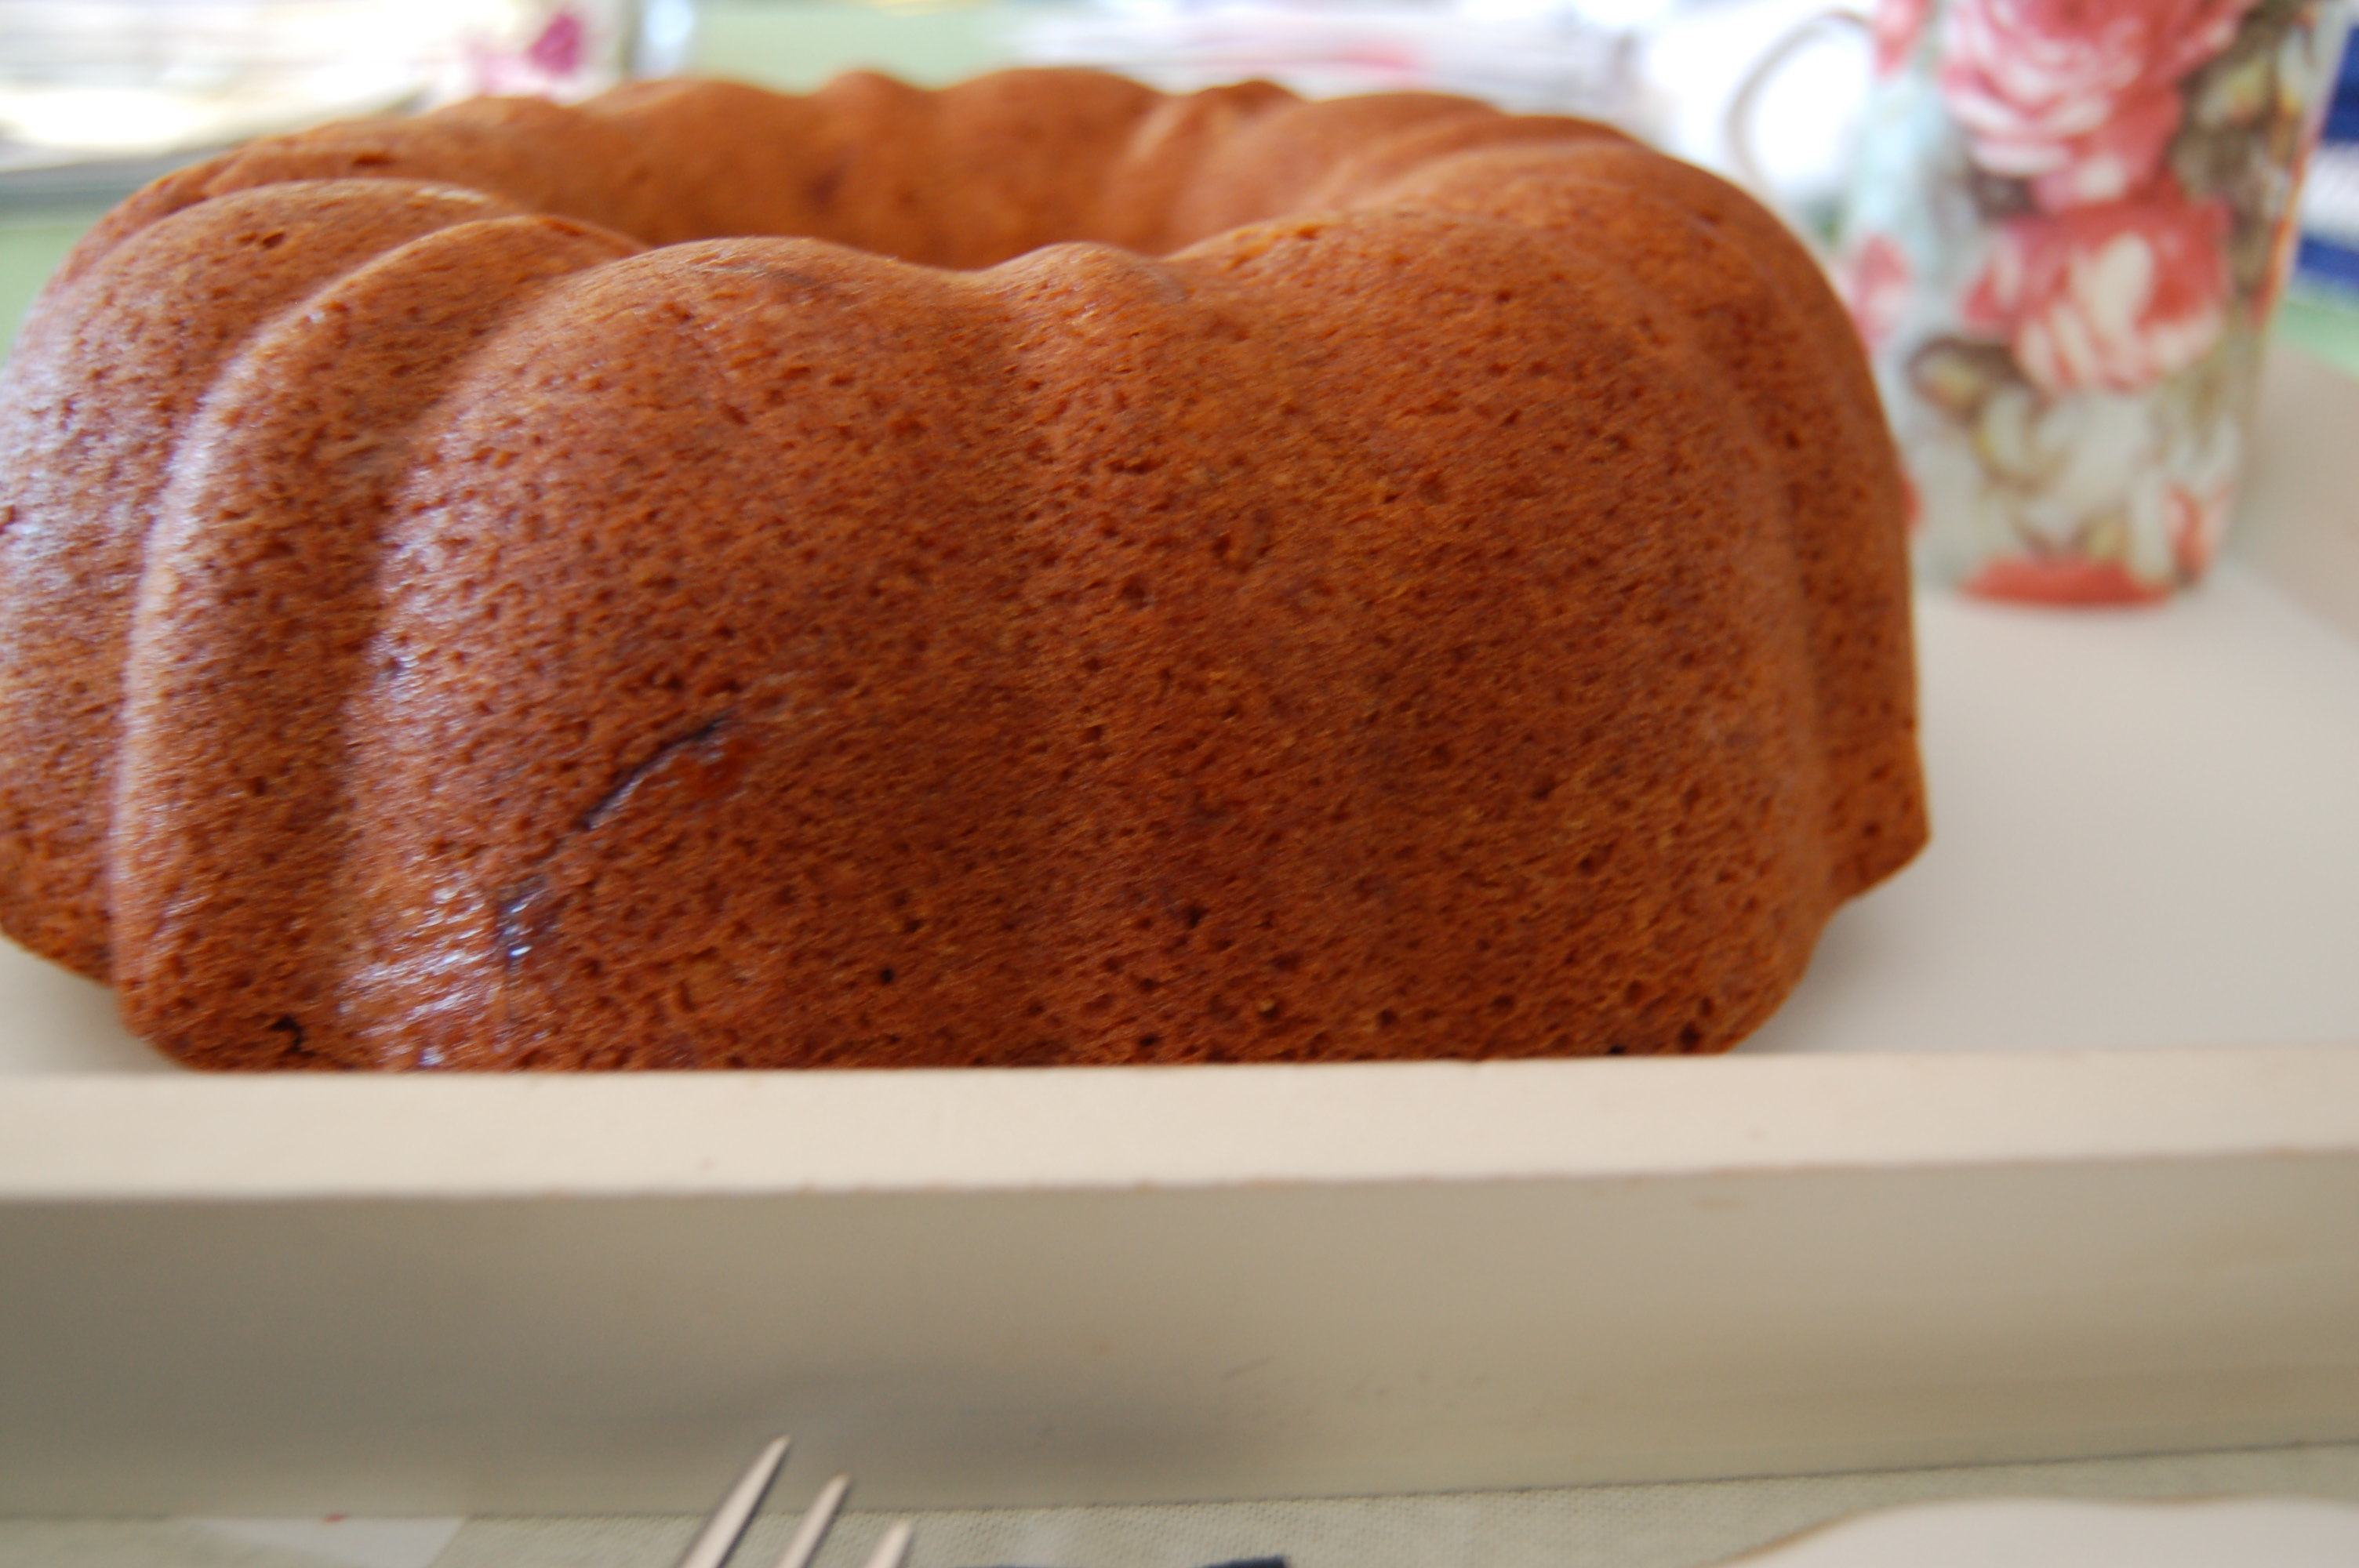 Moorish Apple Cake